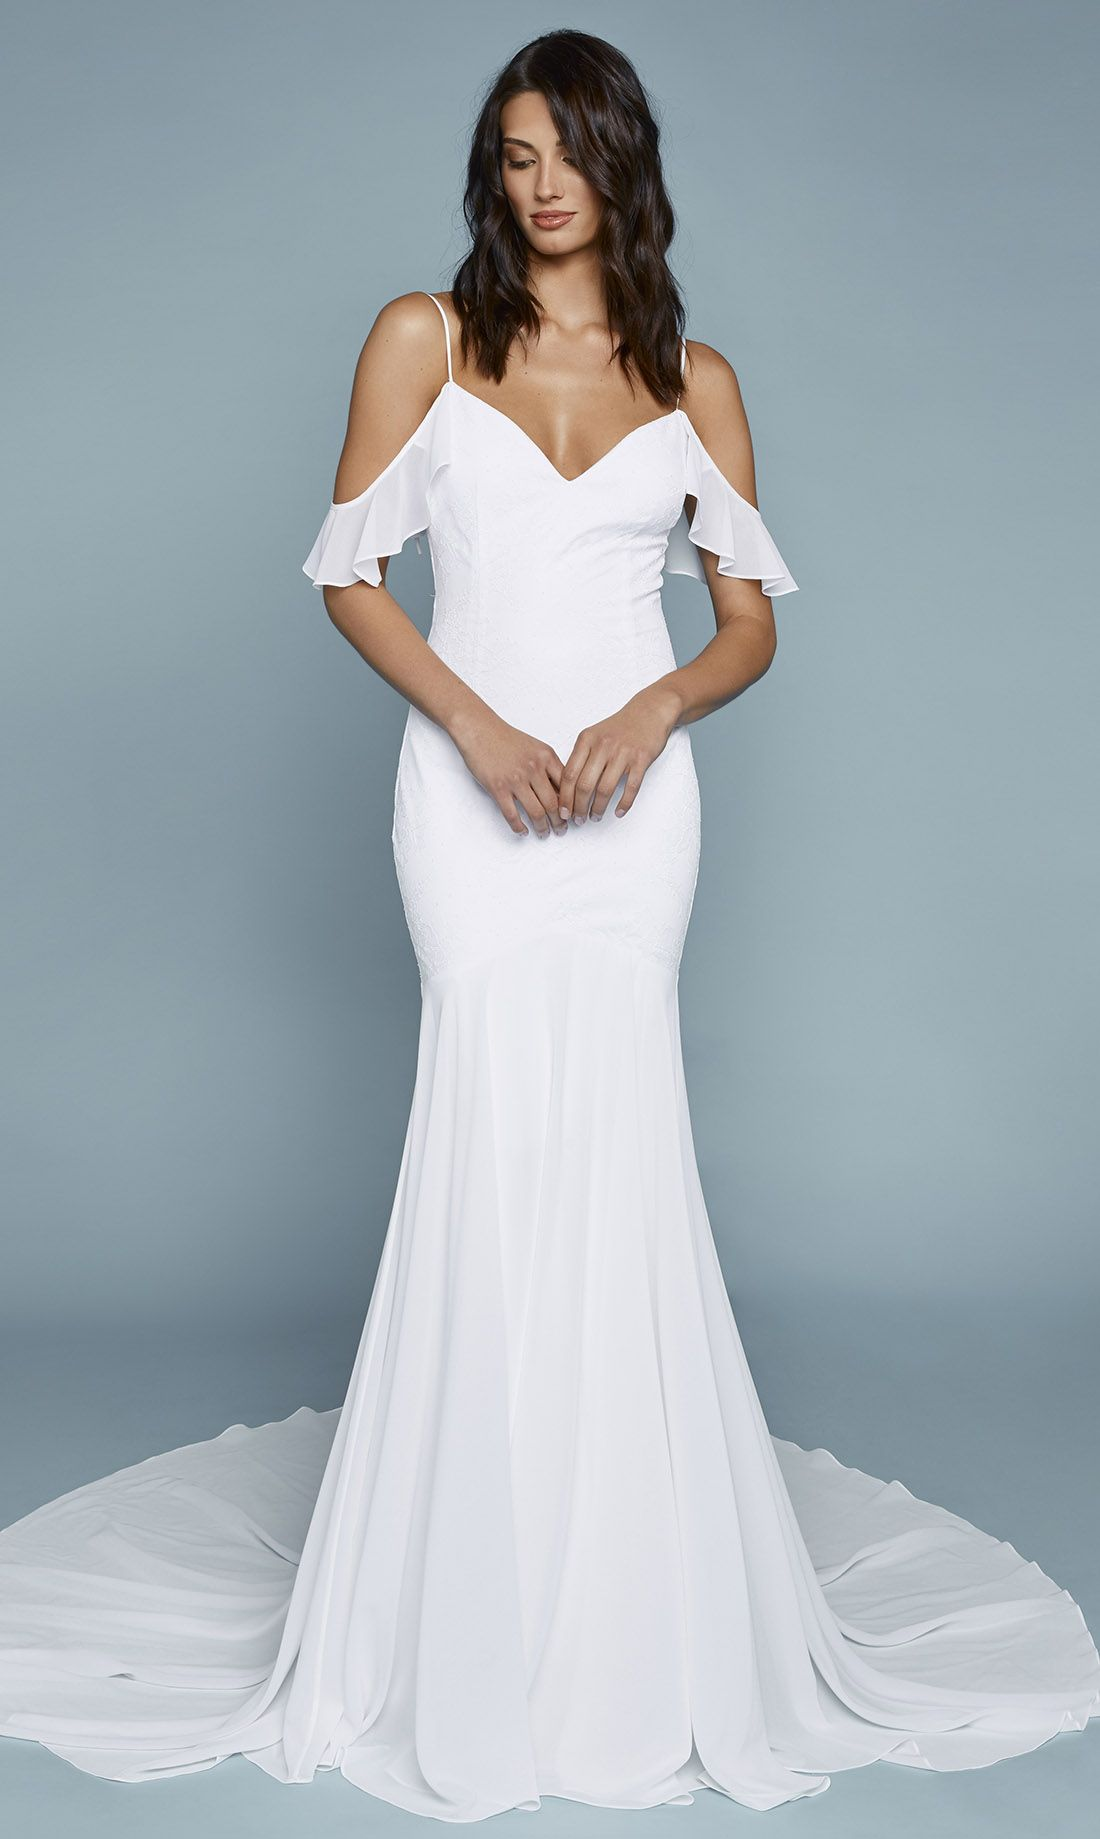 Tulum Chantilly Gown | Chantilly lace, Wedding dress and Weddings